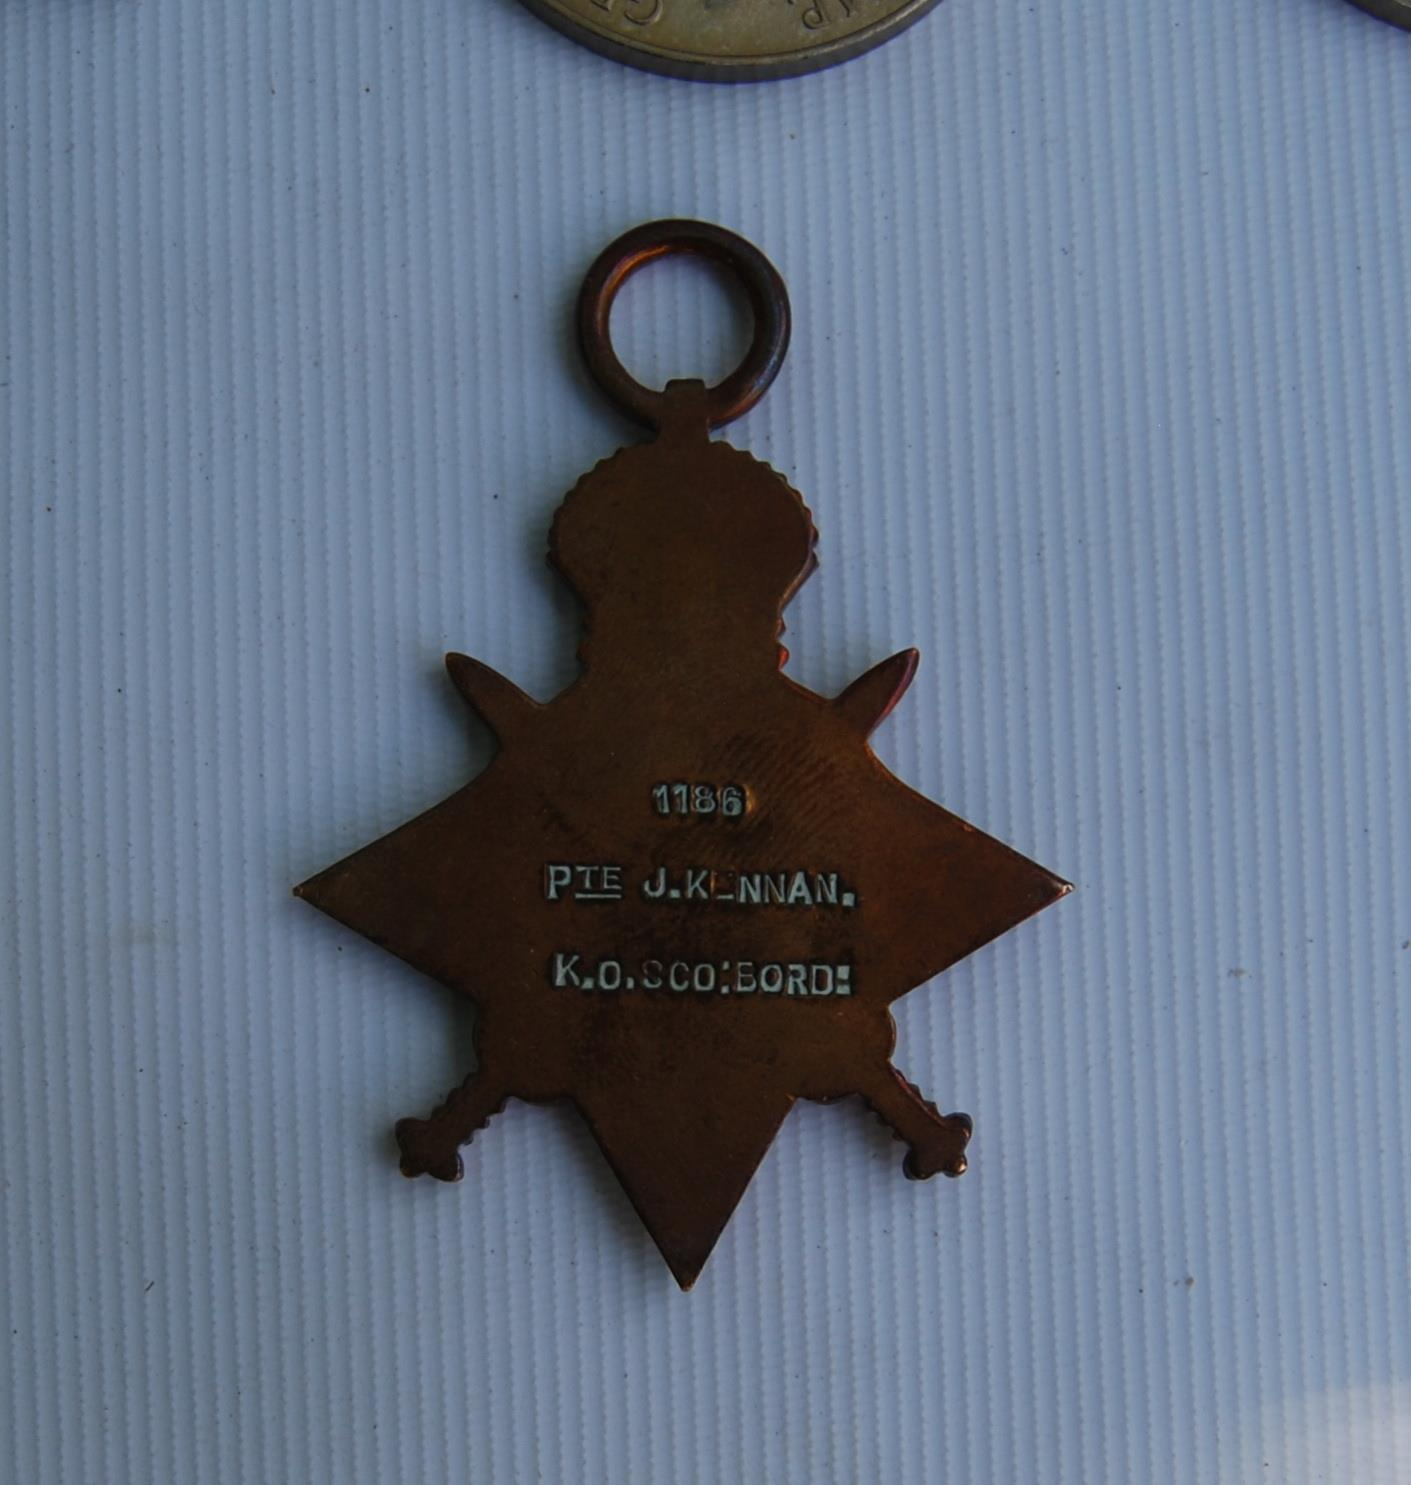 World War I medal group for Private D Kennan, Royal Scots, 3189854, Territorial Efficient Service - Image 2 of 3